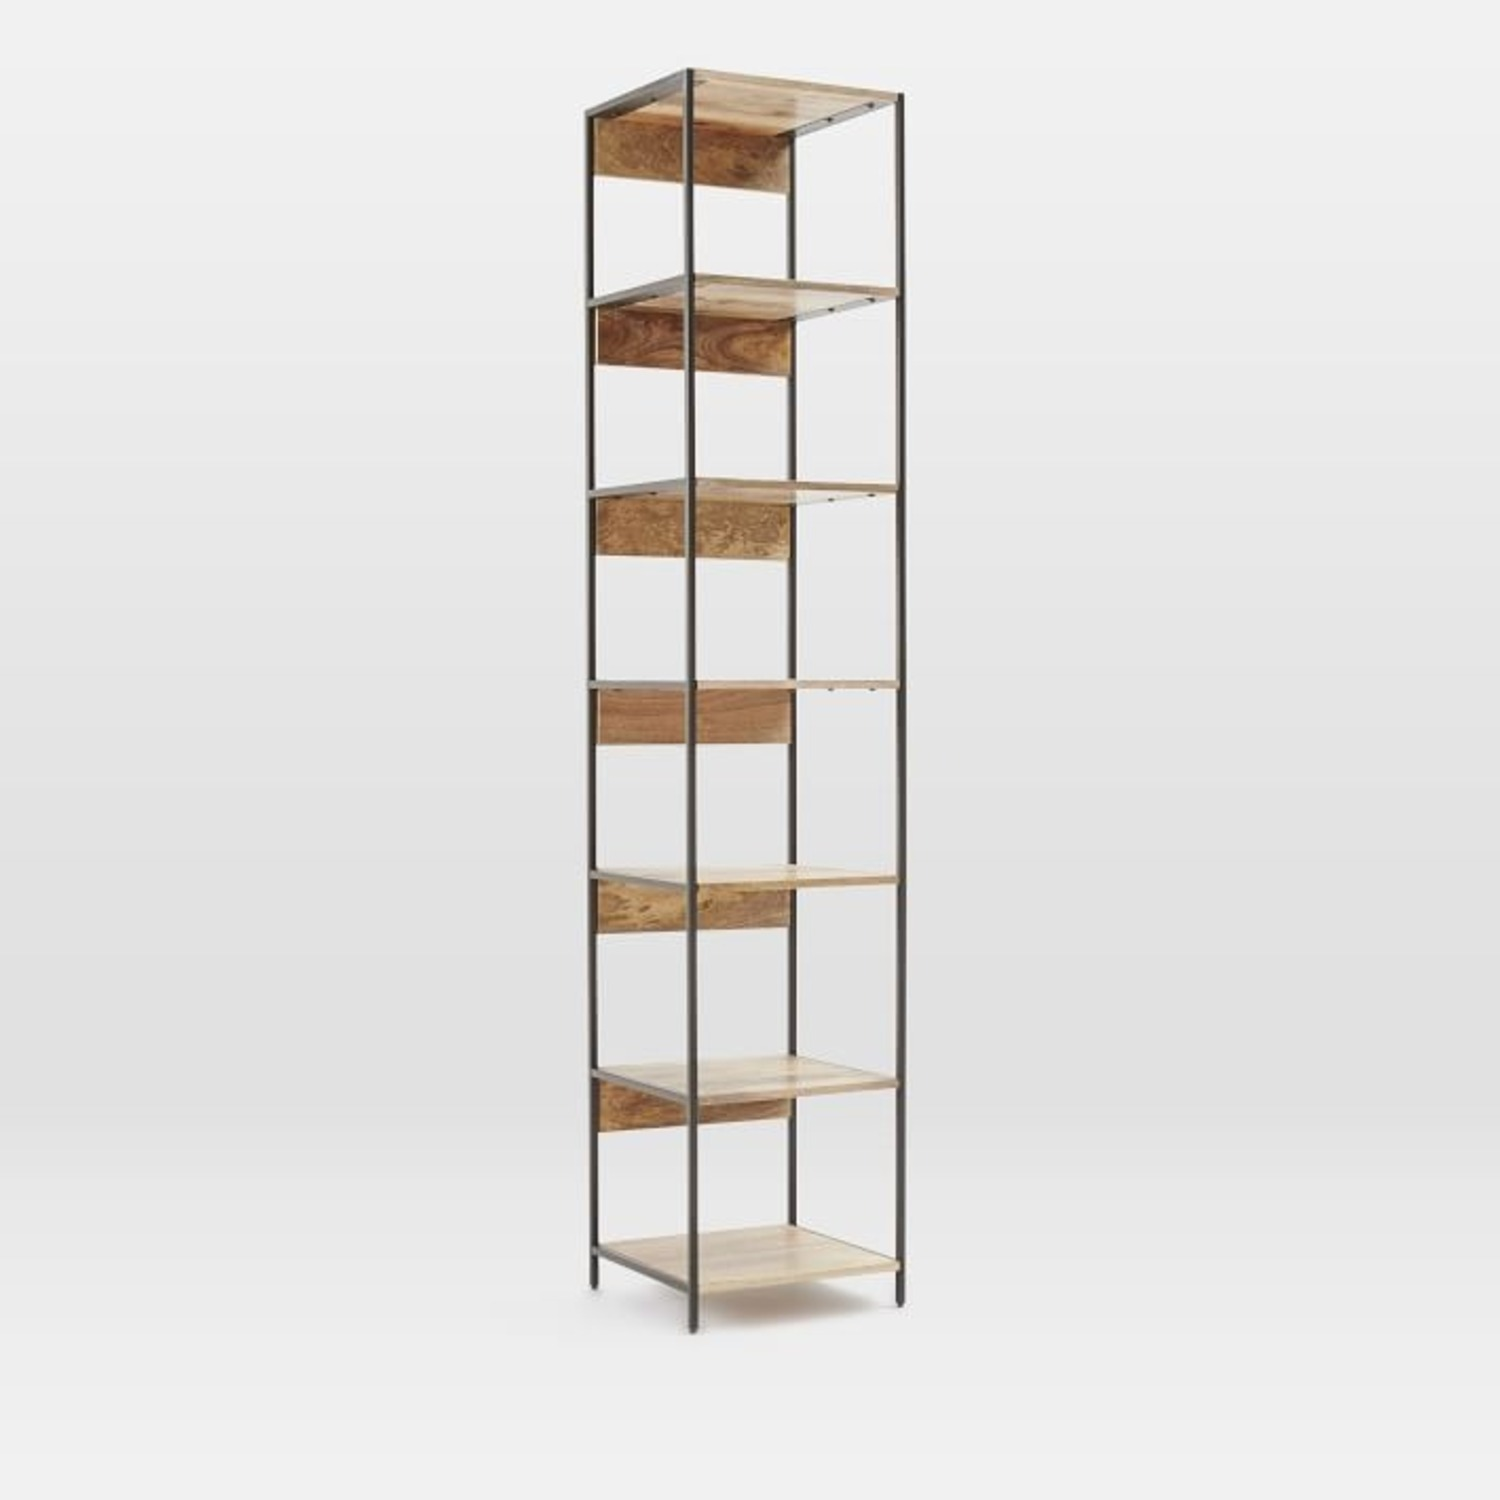 West Elm Industrial Storage Modular Bookshelf - image-1